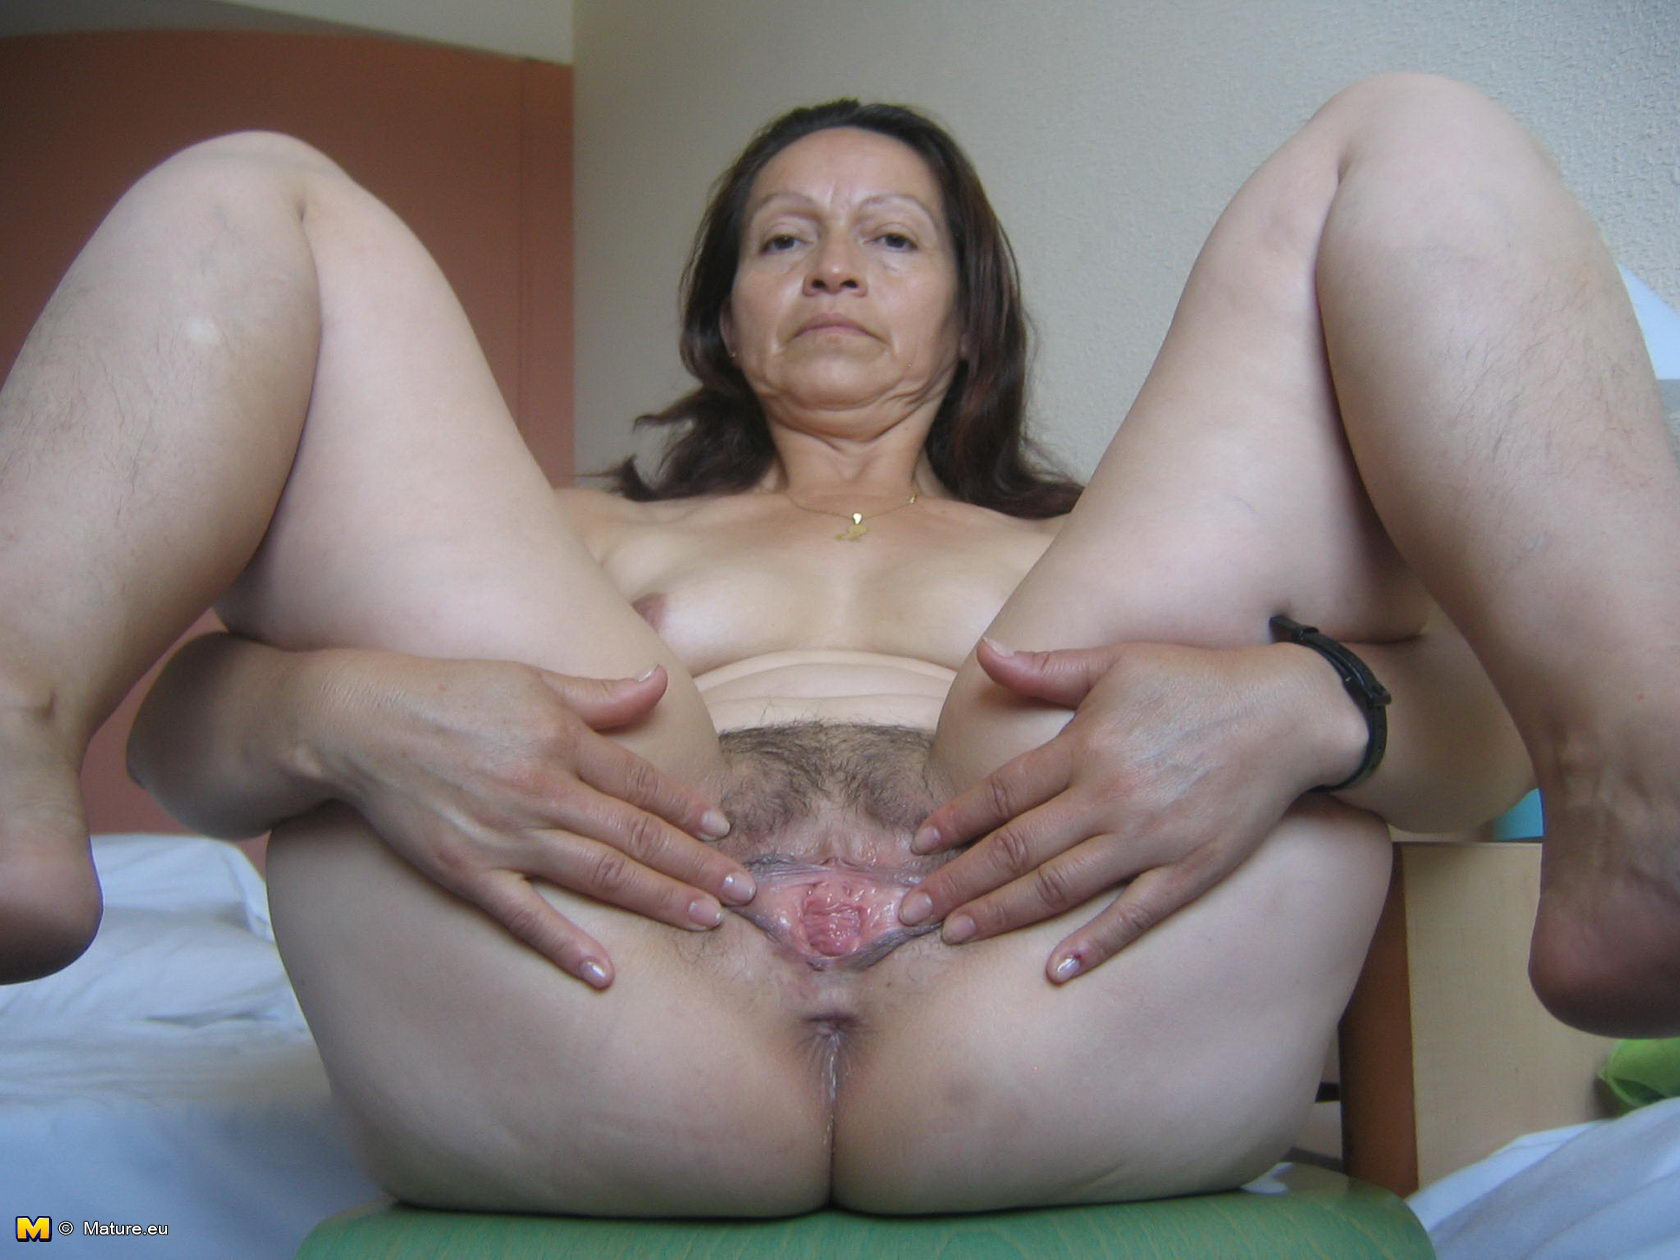 Mushroom hot mom tube nude photo